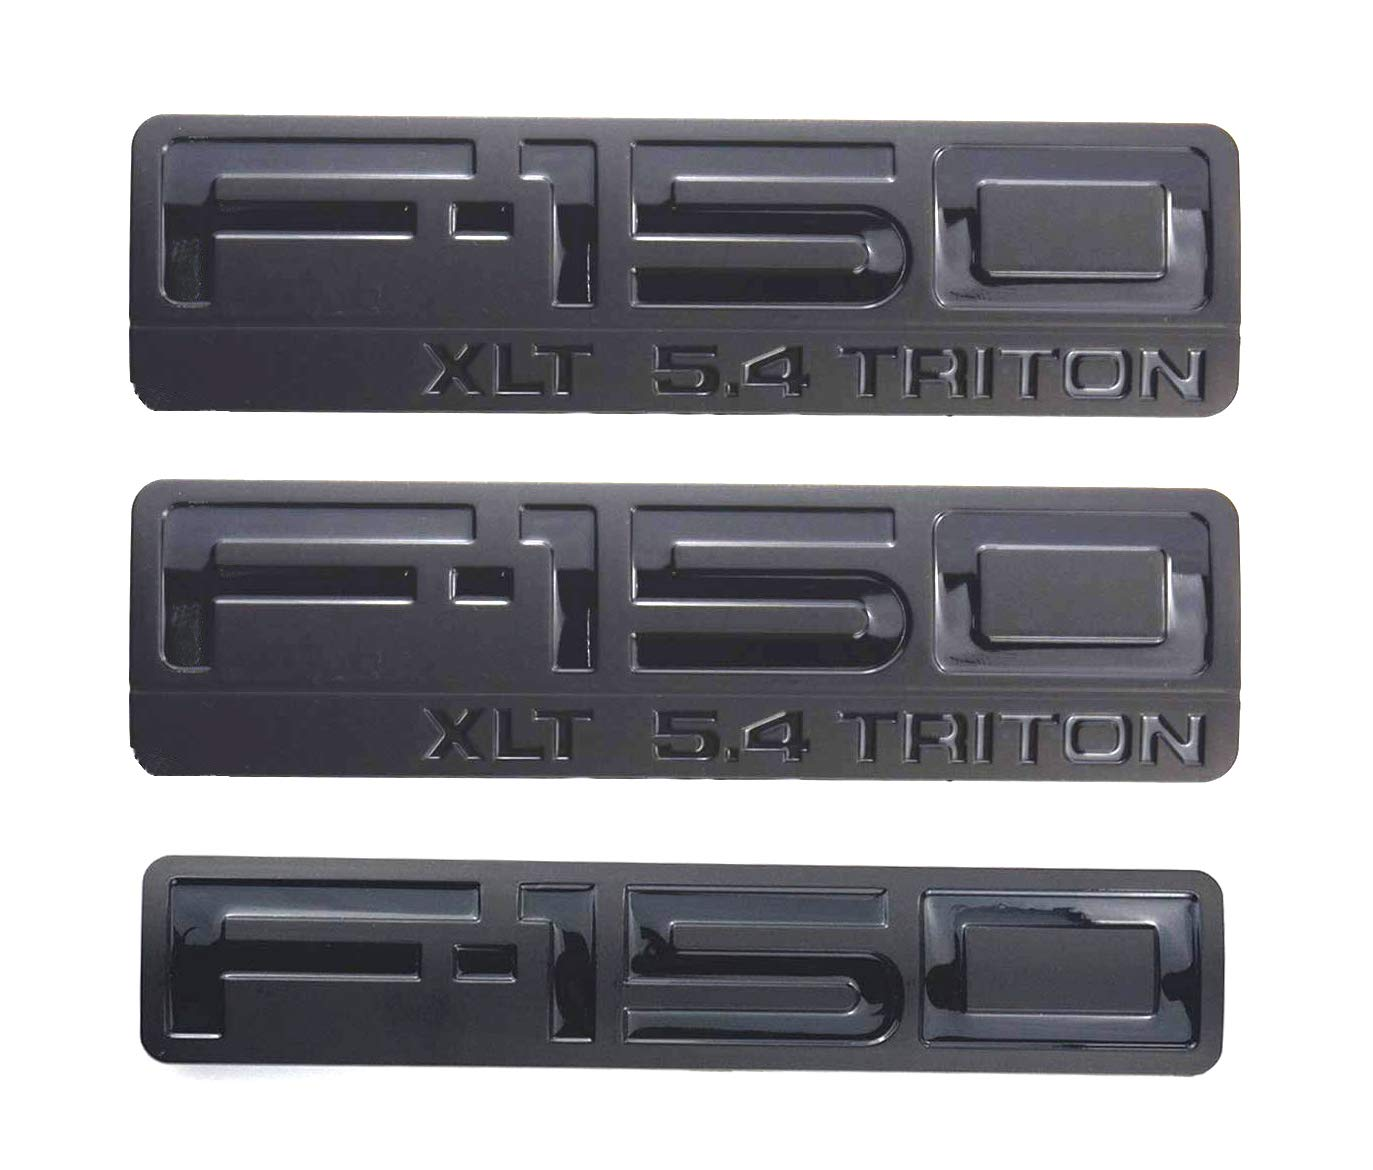 2x OEM 2004-2008 F-150 XLT 5.4 Triton Fender Emblems Badges PAIR NEW 3D logo Replacement for F150 Black Sanucaraofo